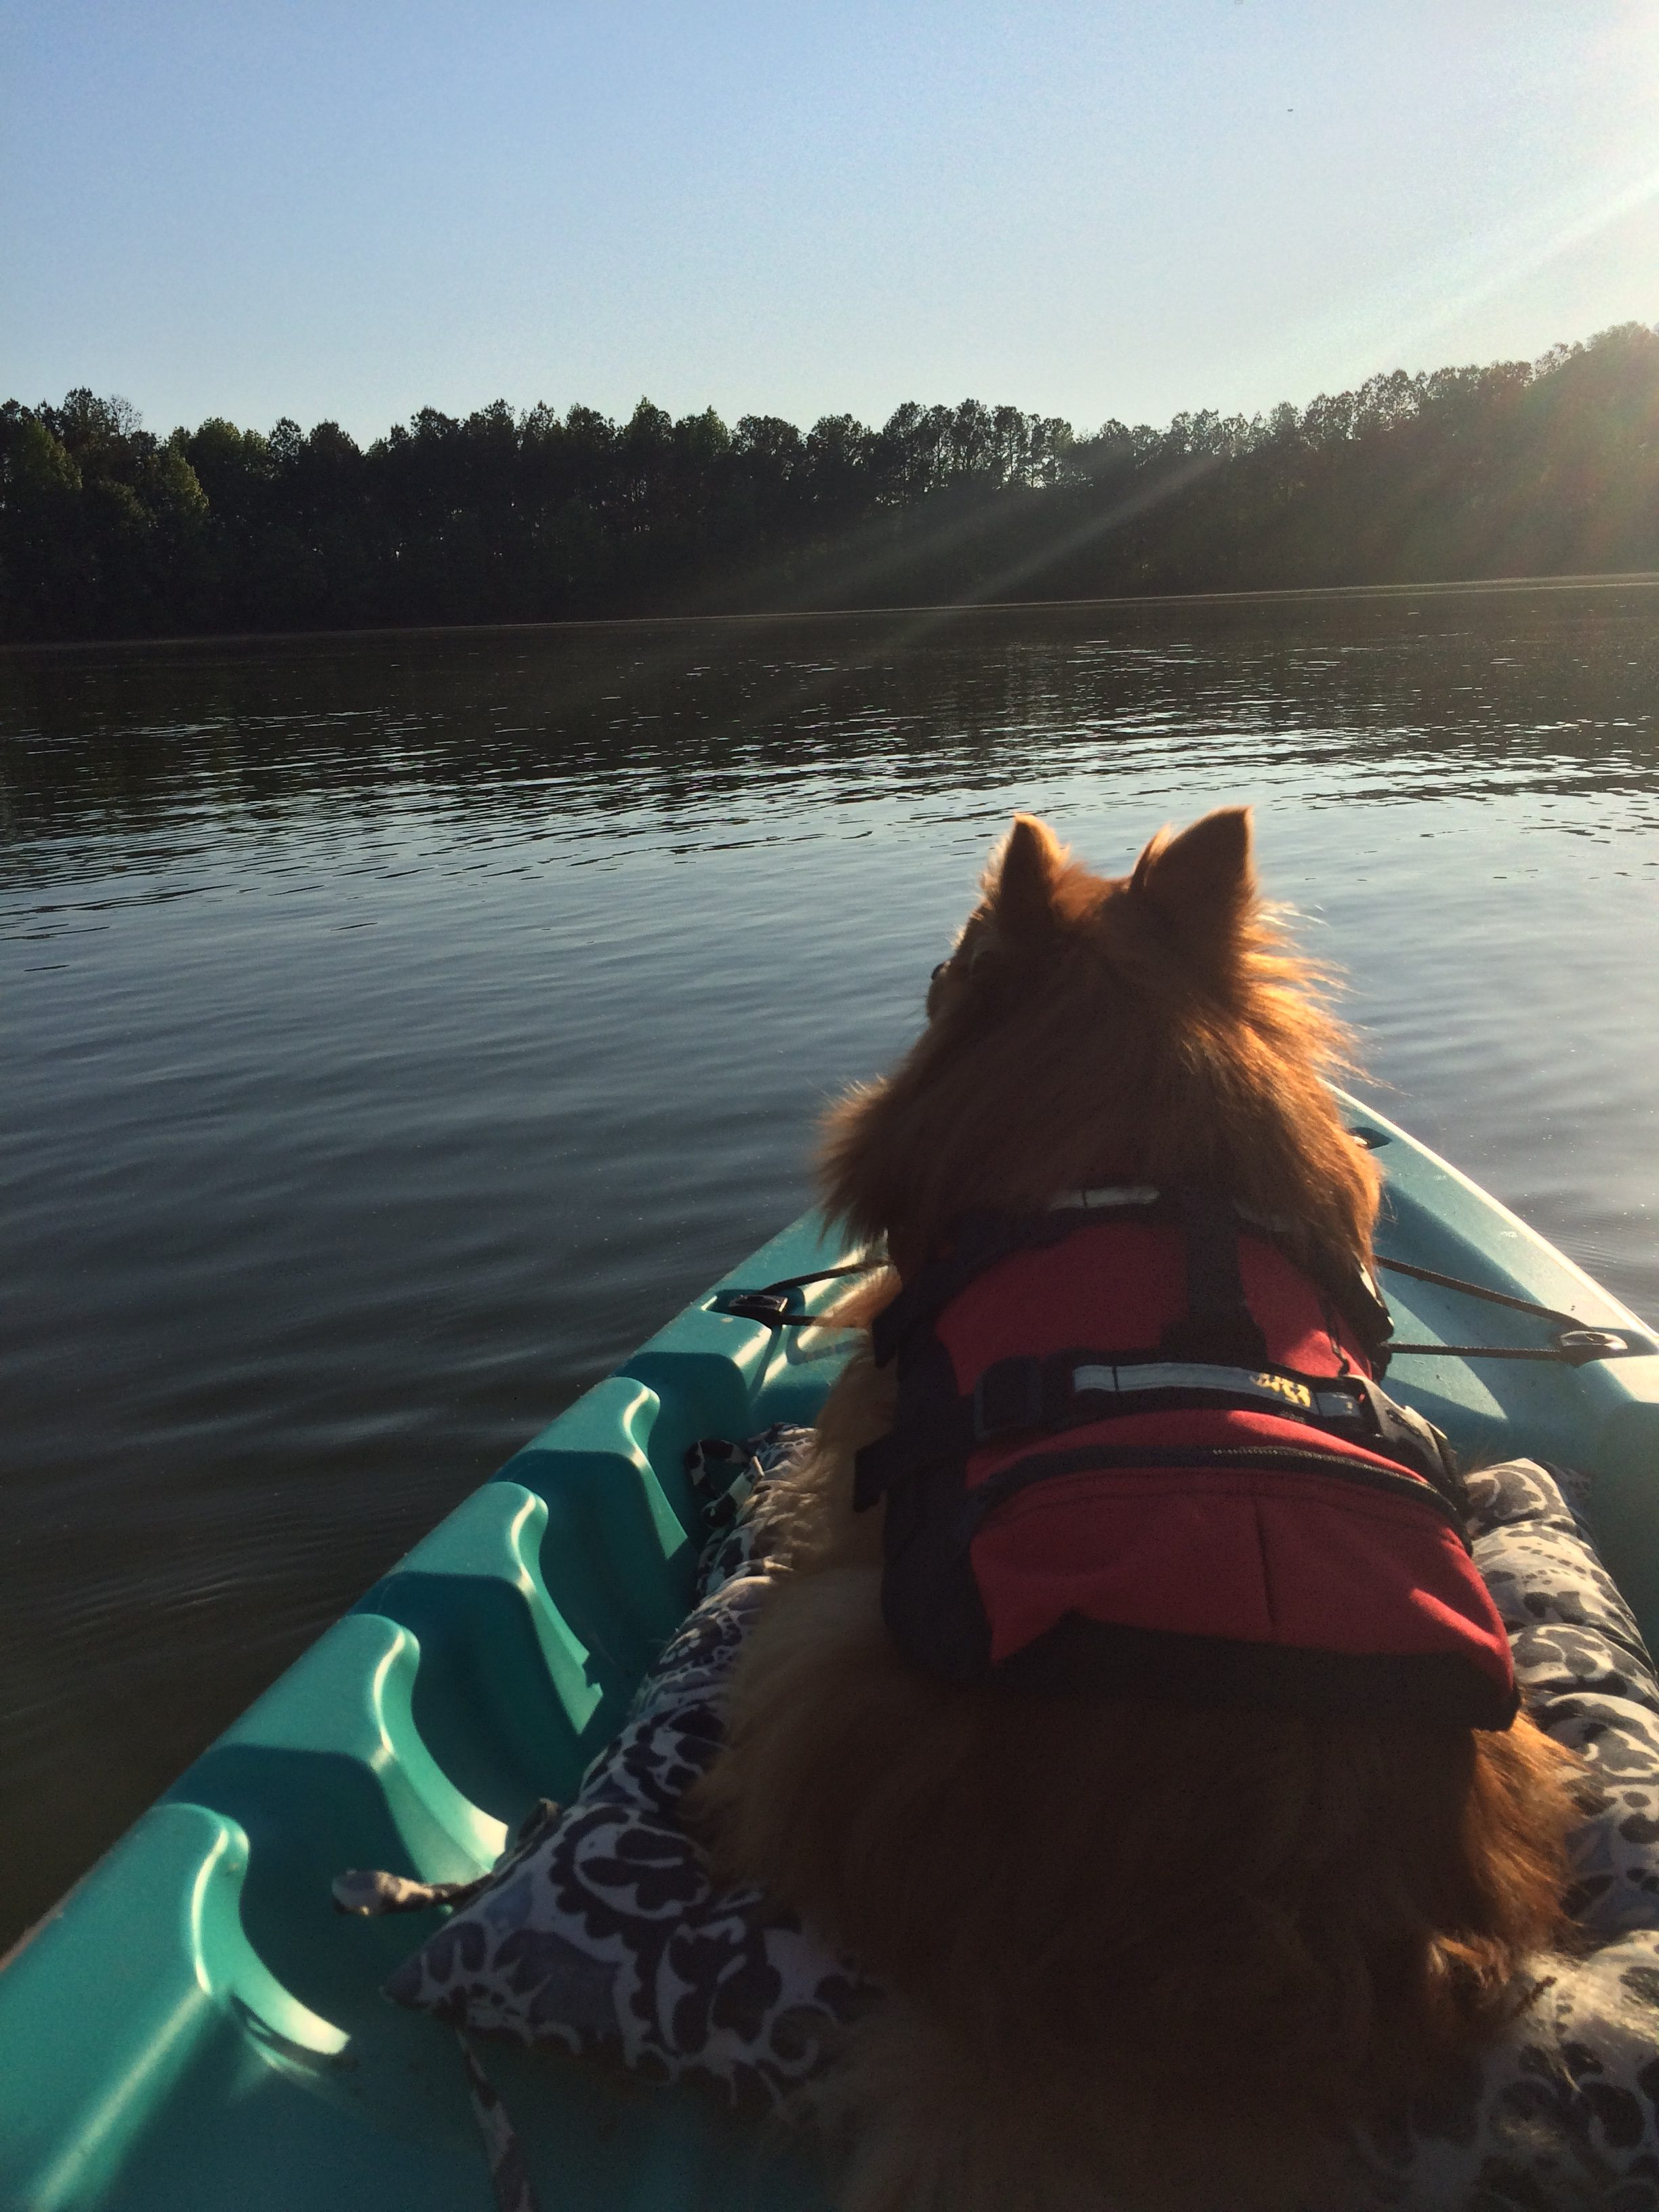 kayaking-with-your-dog-and-how-to-keep-them-safe